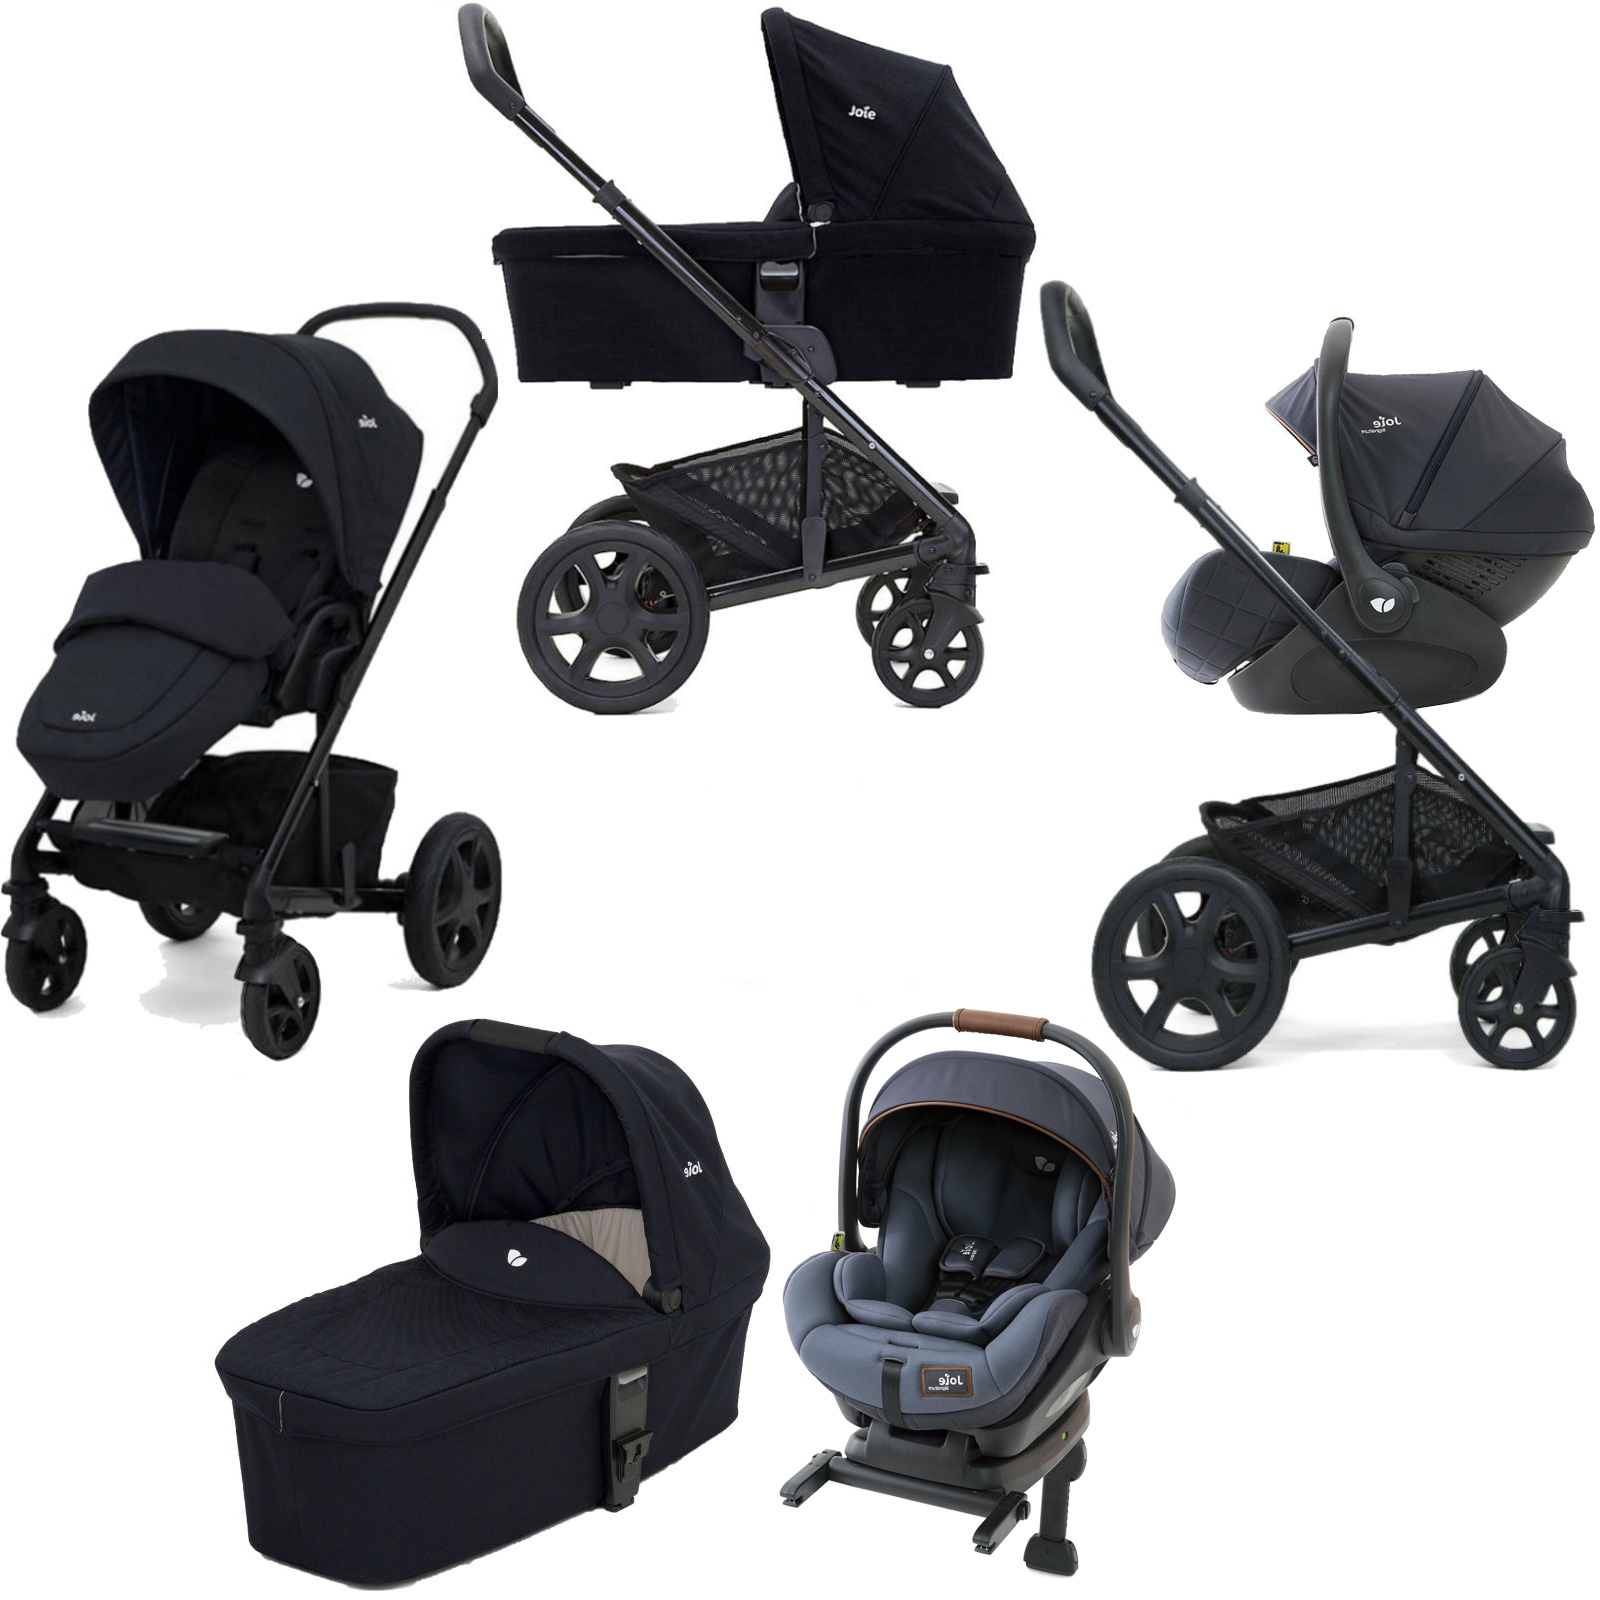 Joie Gemm & Isofix Base Bundle Joie Chrome Dlx I Level Travel System With Carrycot Inc